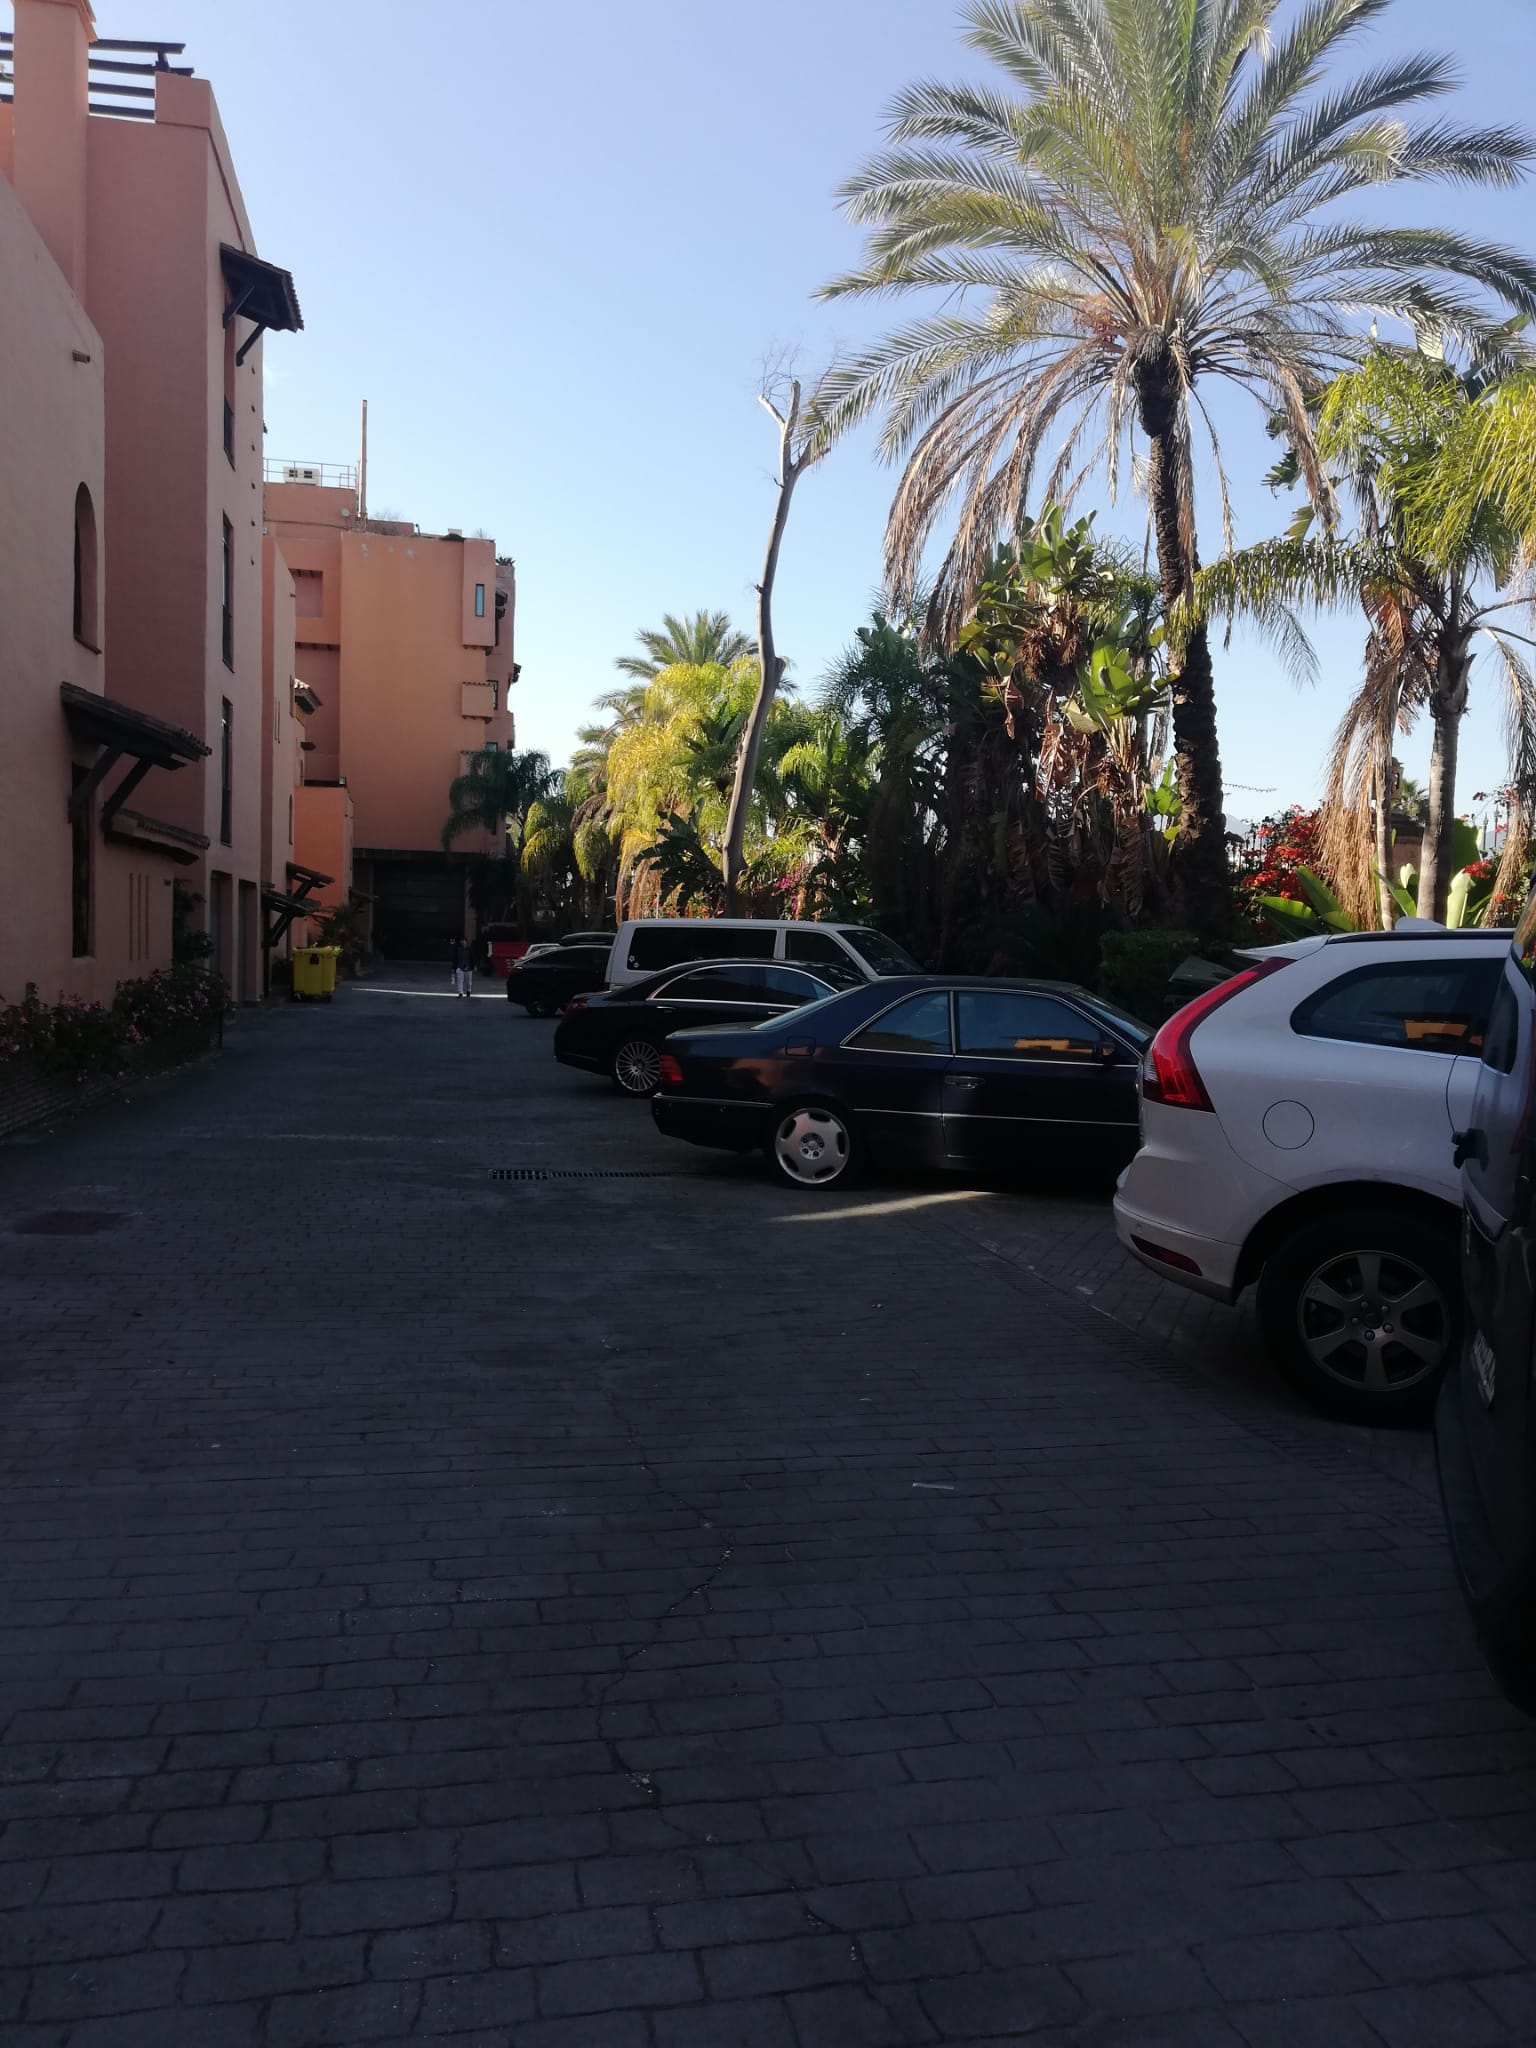 Studio for rent near the sea in Cancelada - mibgroup.es